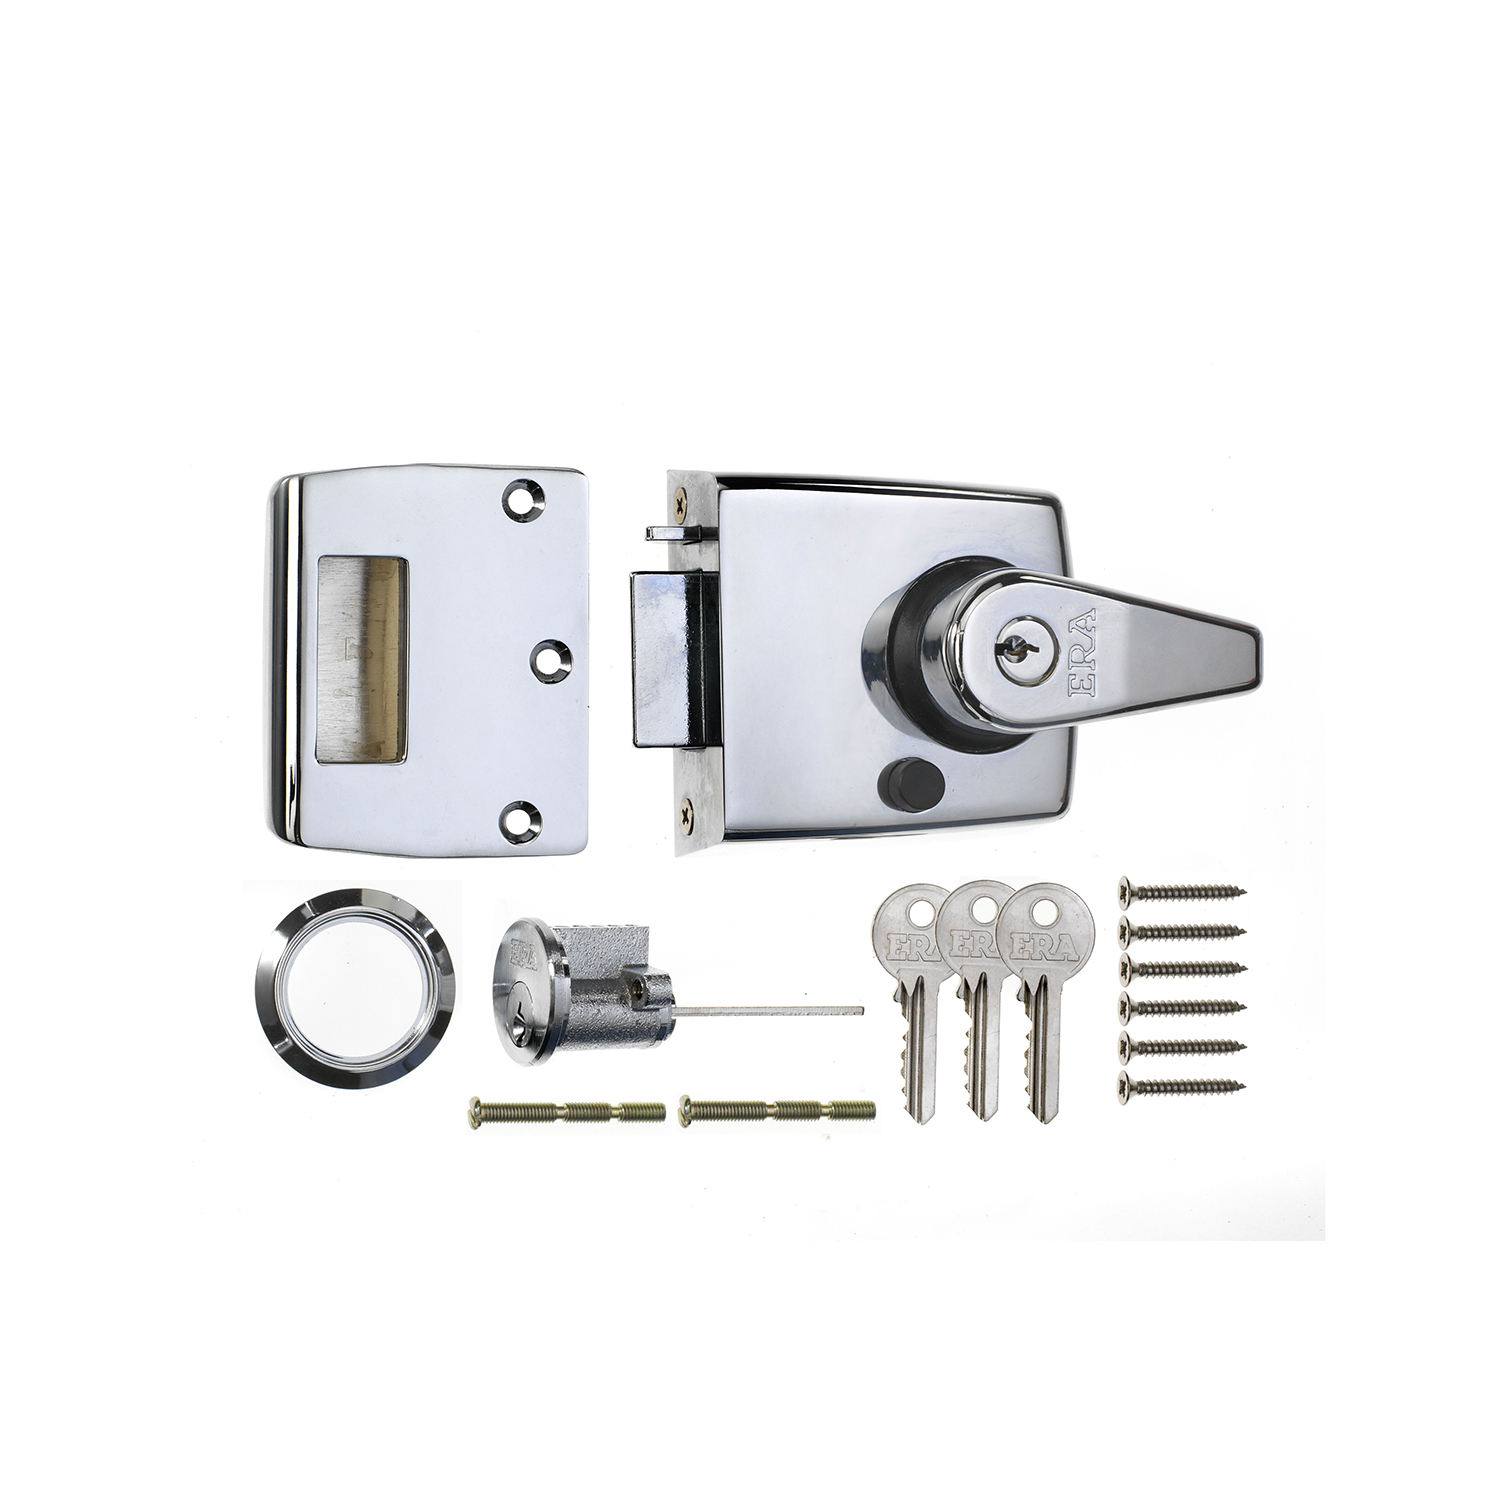 Double Locking Nightlatch Door Lock